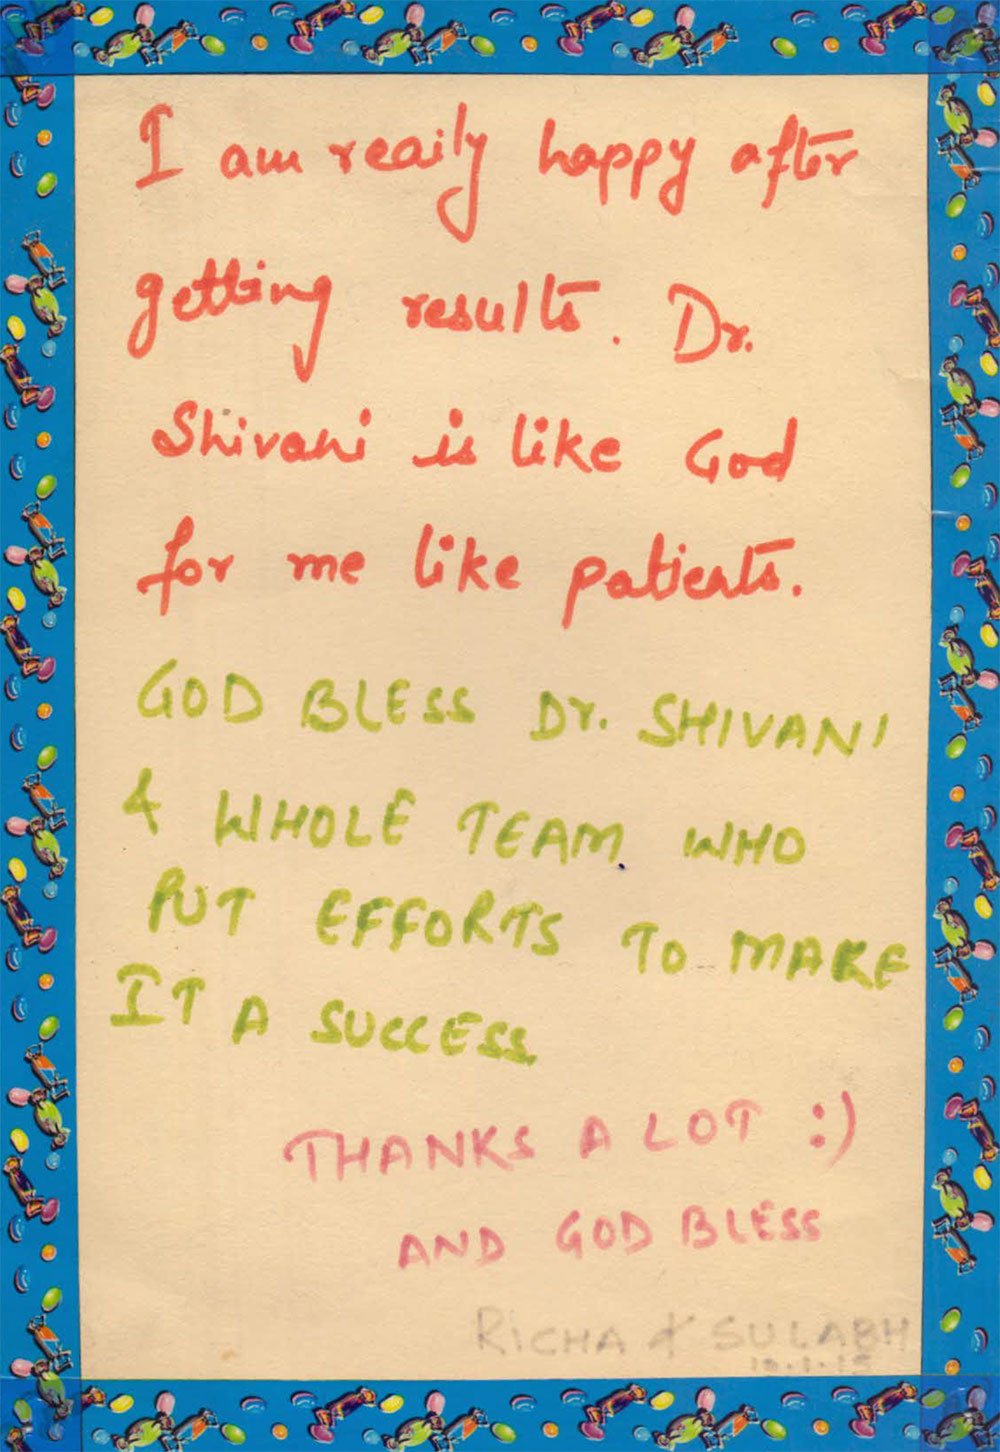 Client Testimonial for Dr Shivani is Like God